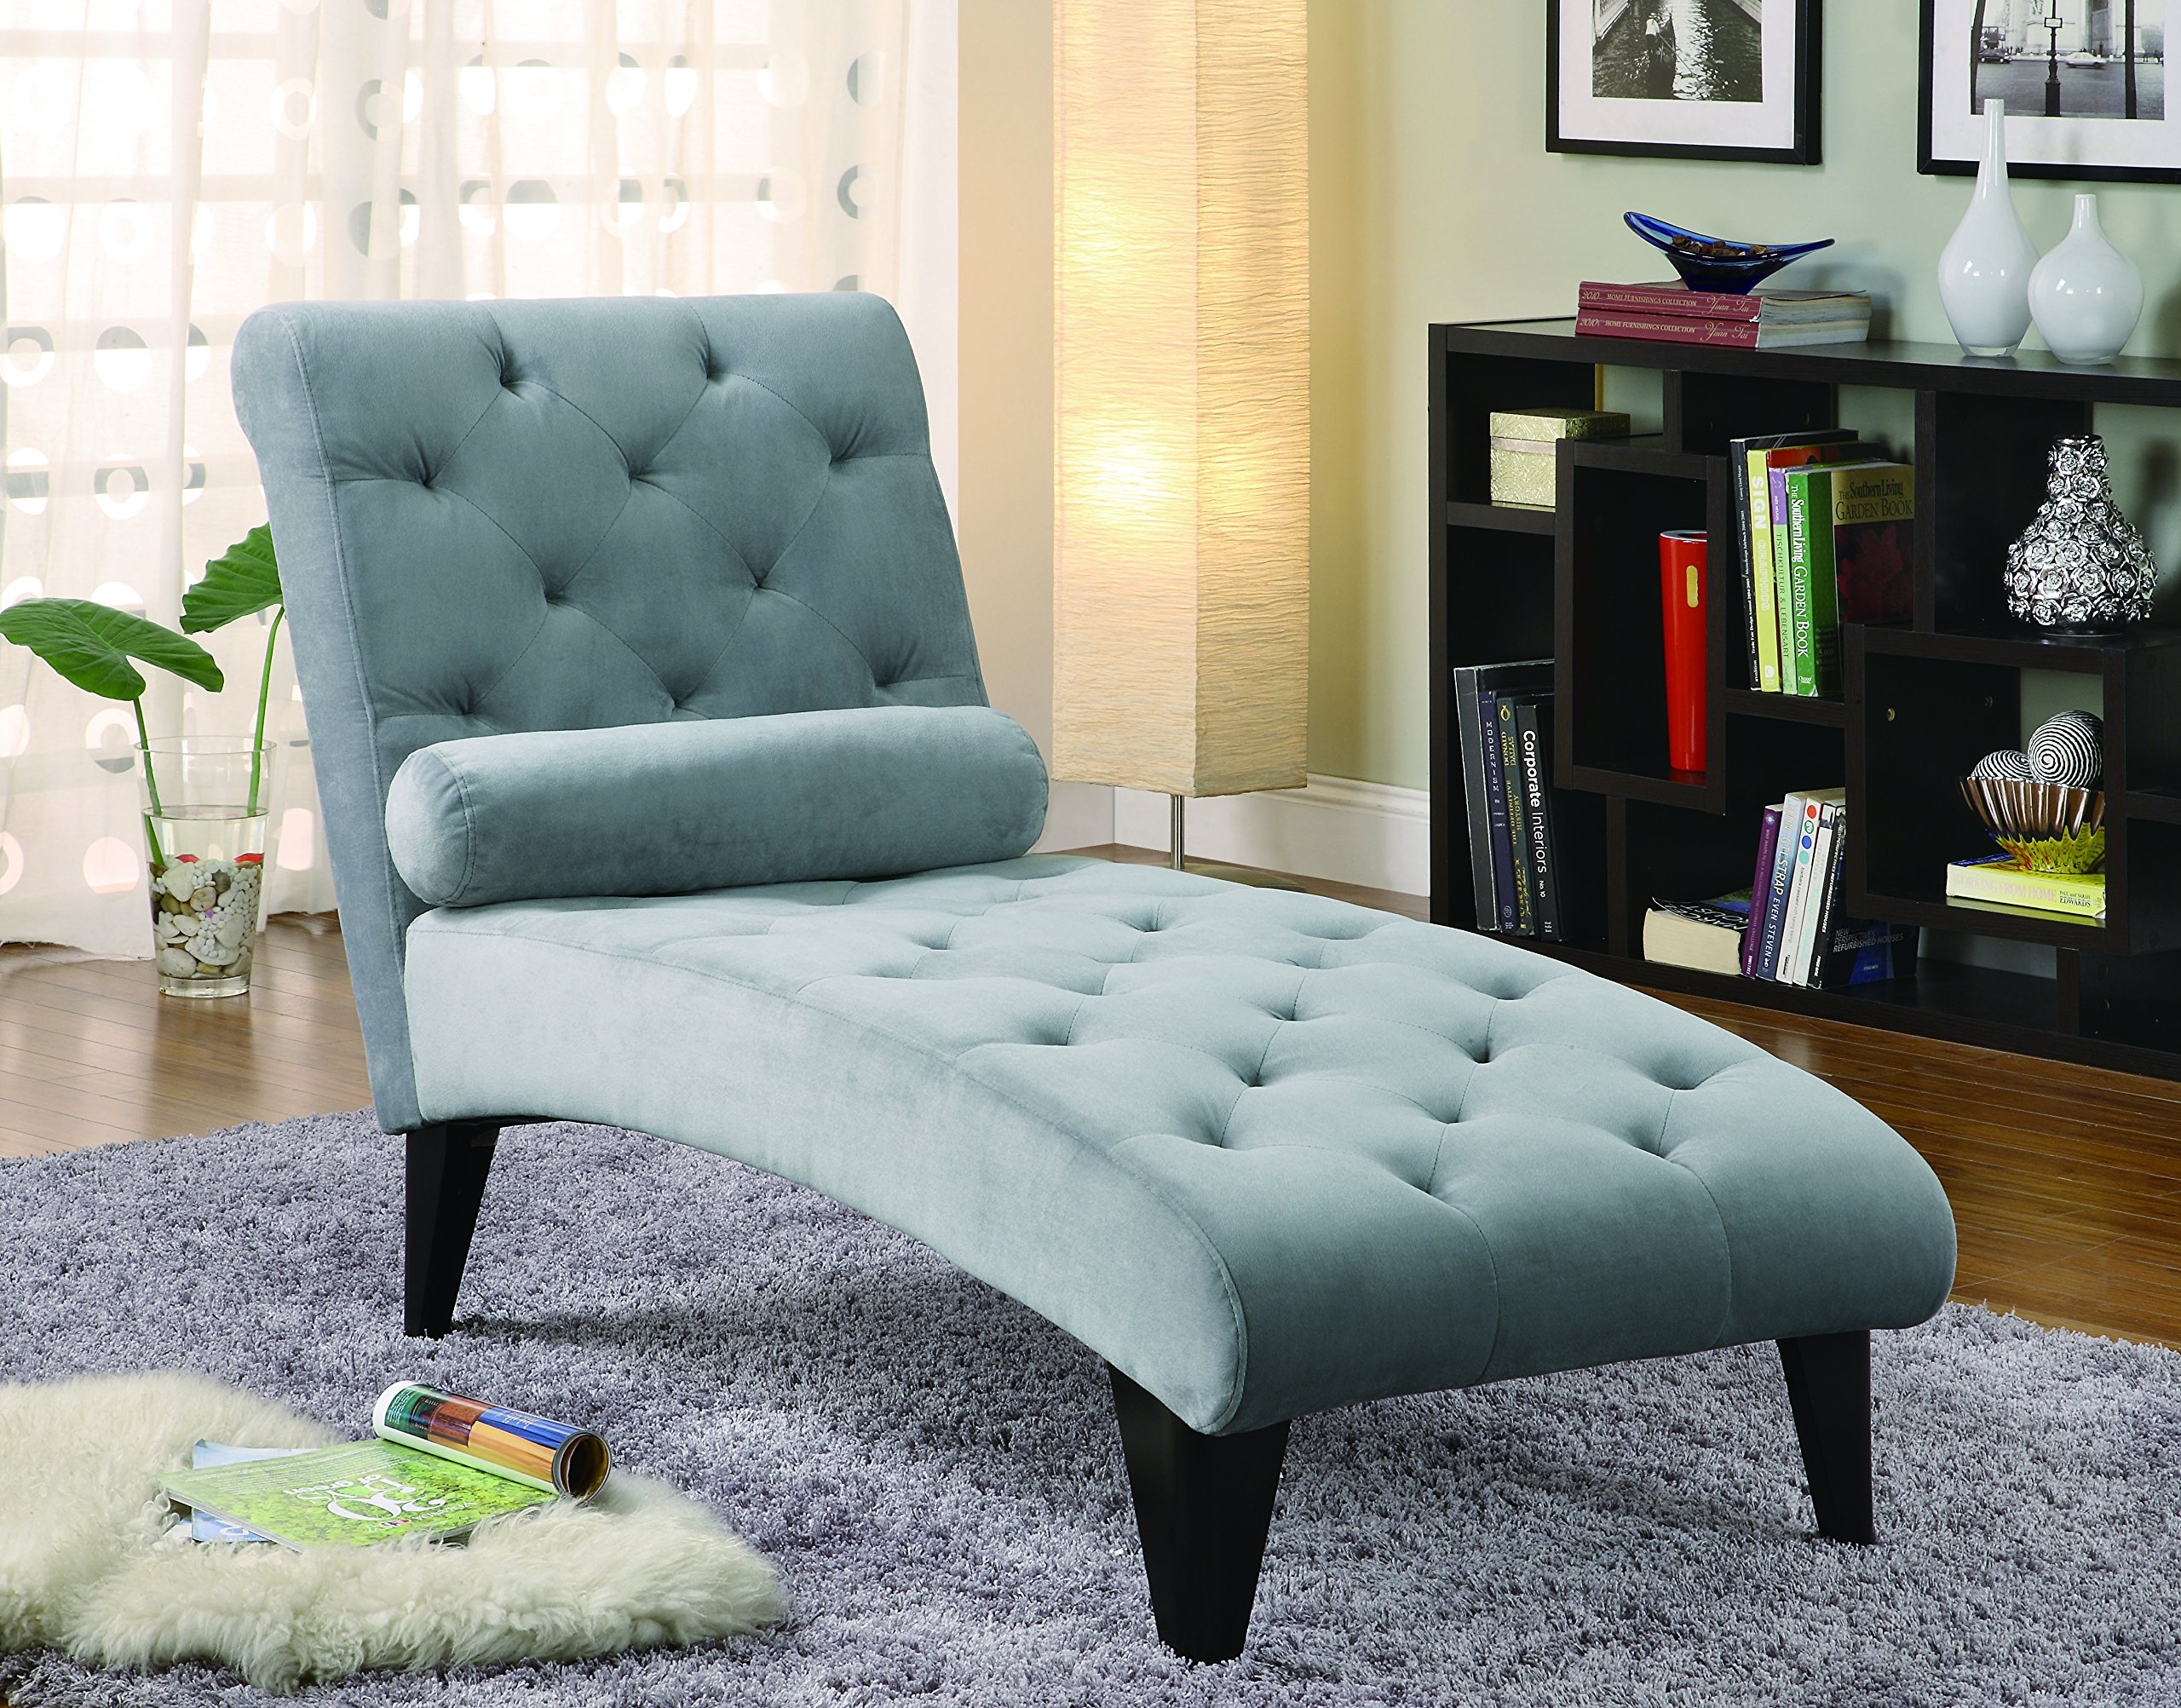 Amazoncom Coaster Home Furnishings Tufted Chaise With Small